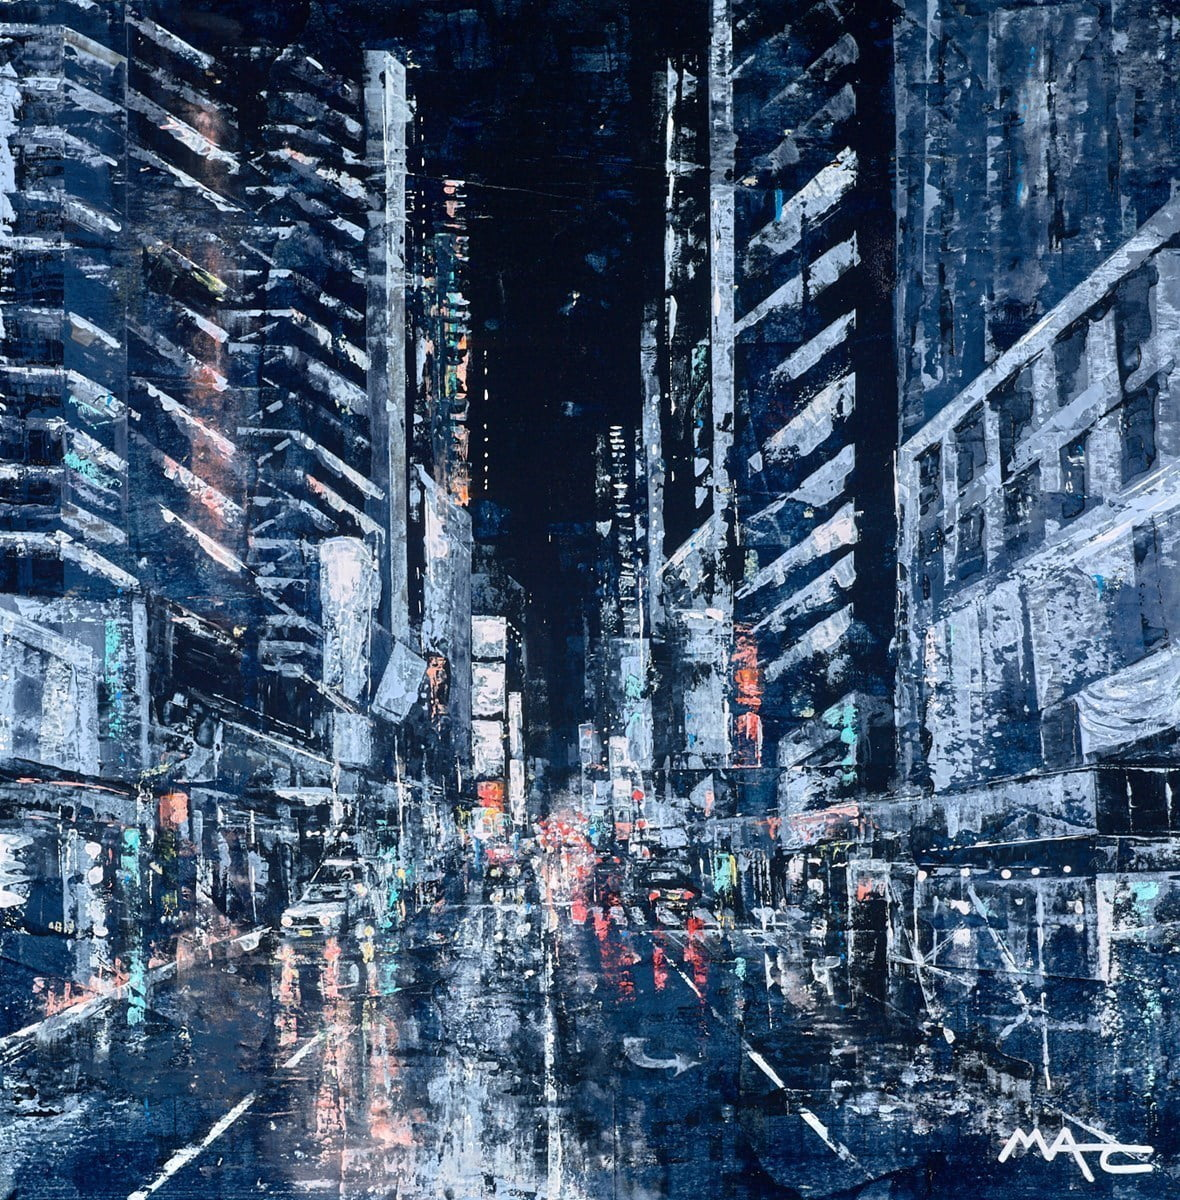 Heading to Time Square NYC ~ Mark Curryer